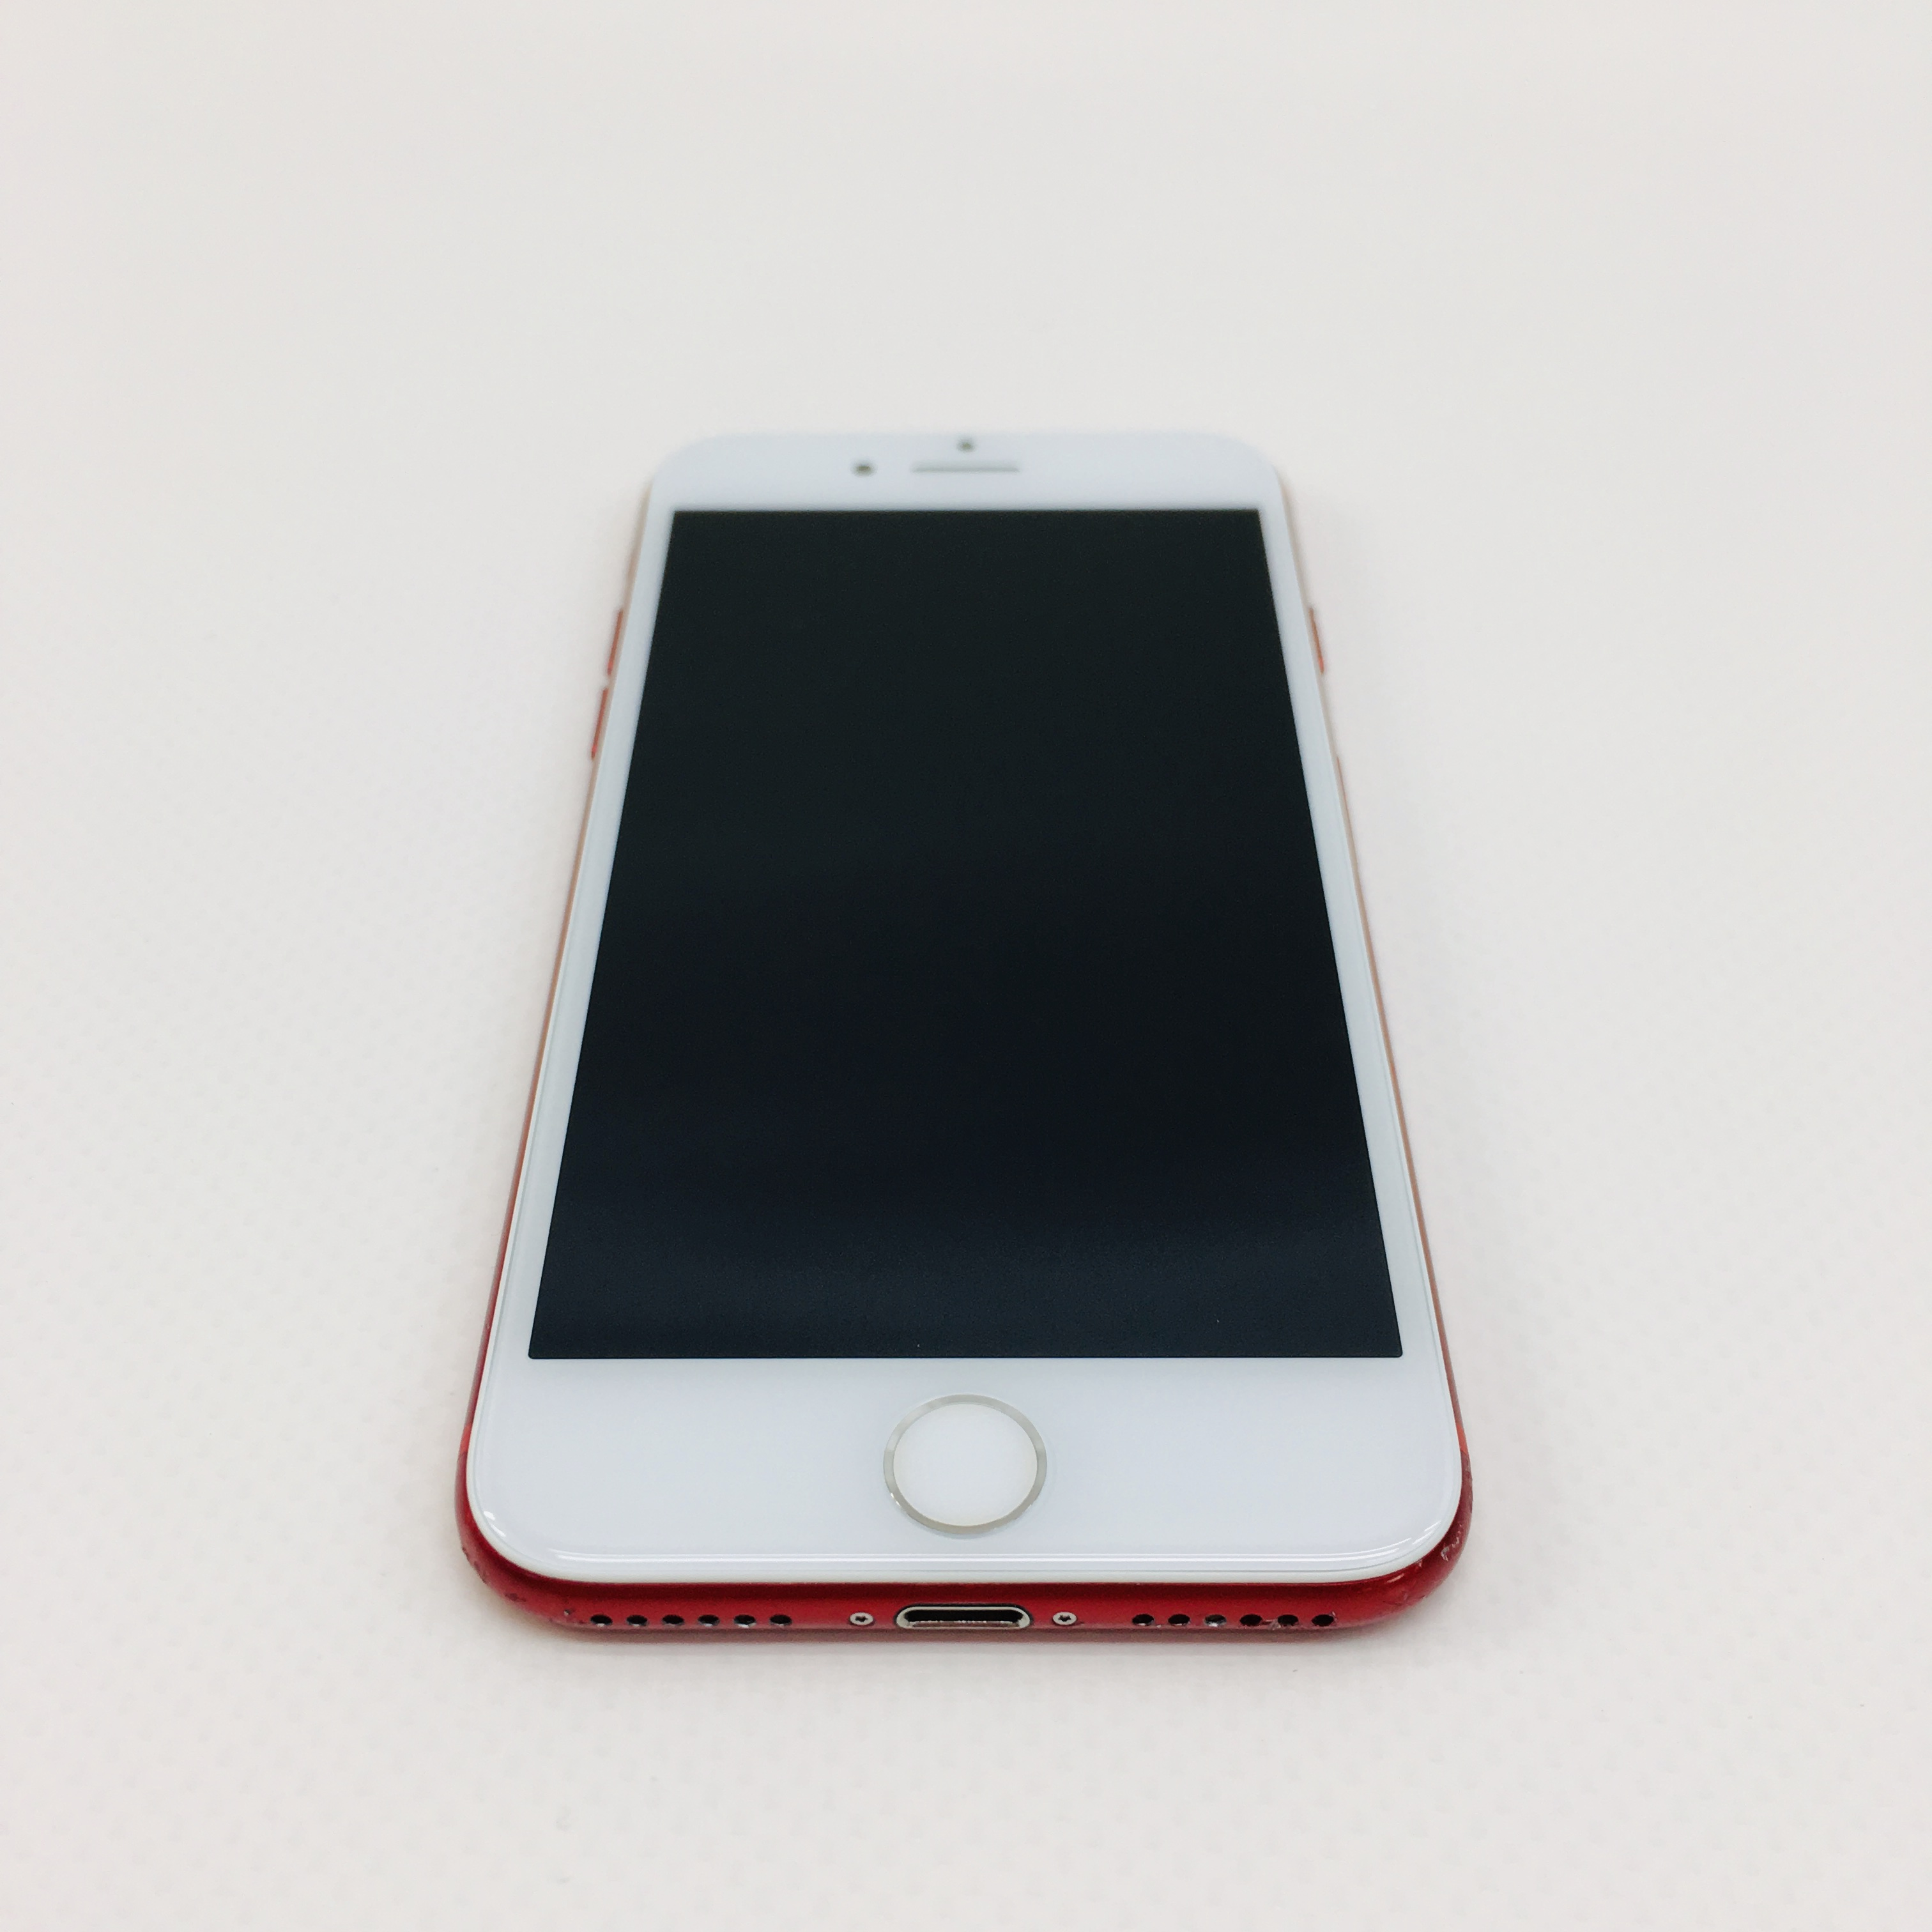 Refurbished iPhone 7 - New LCD